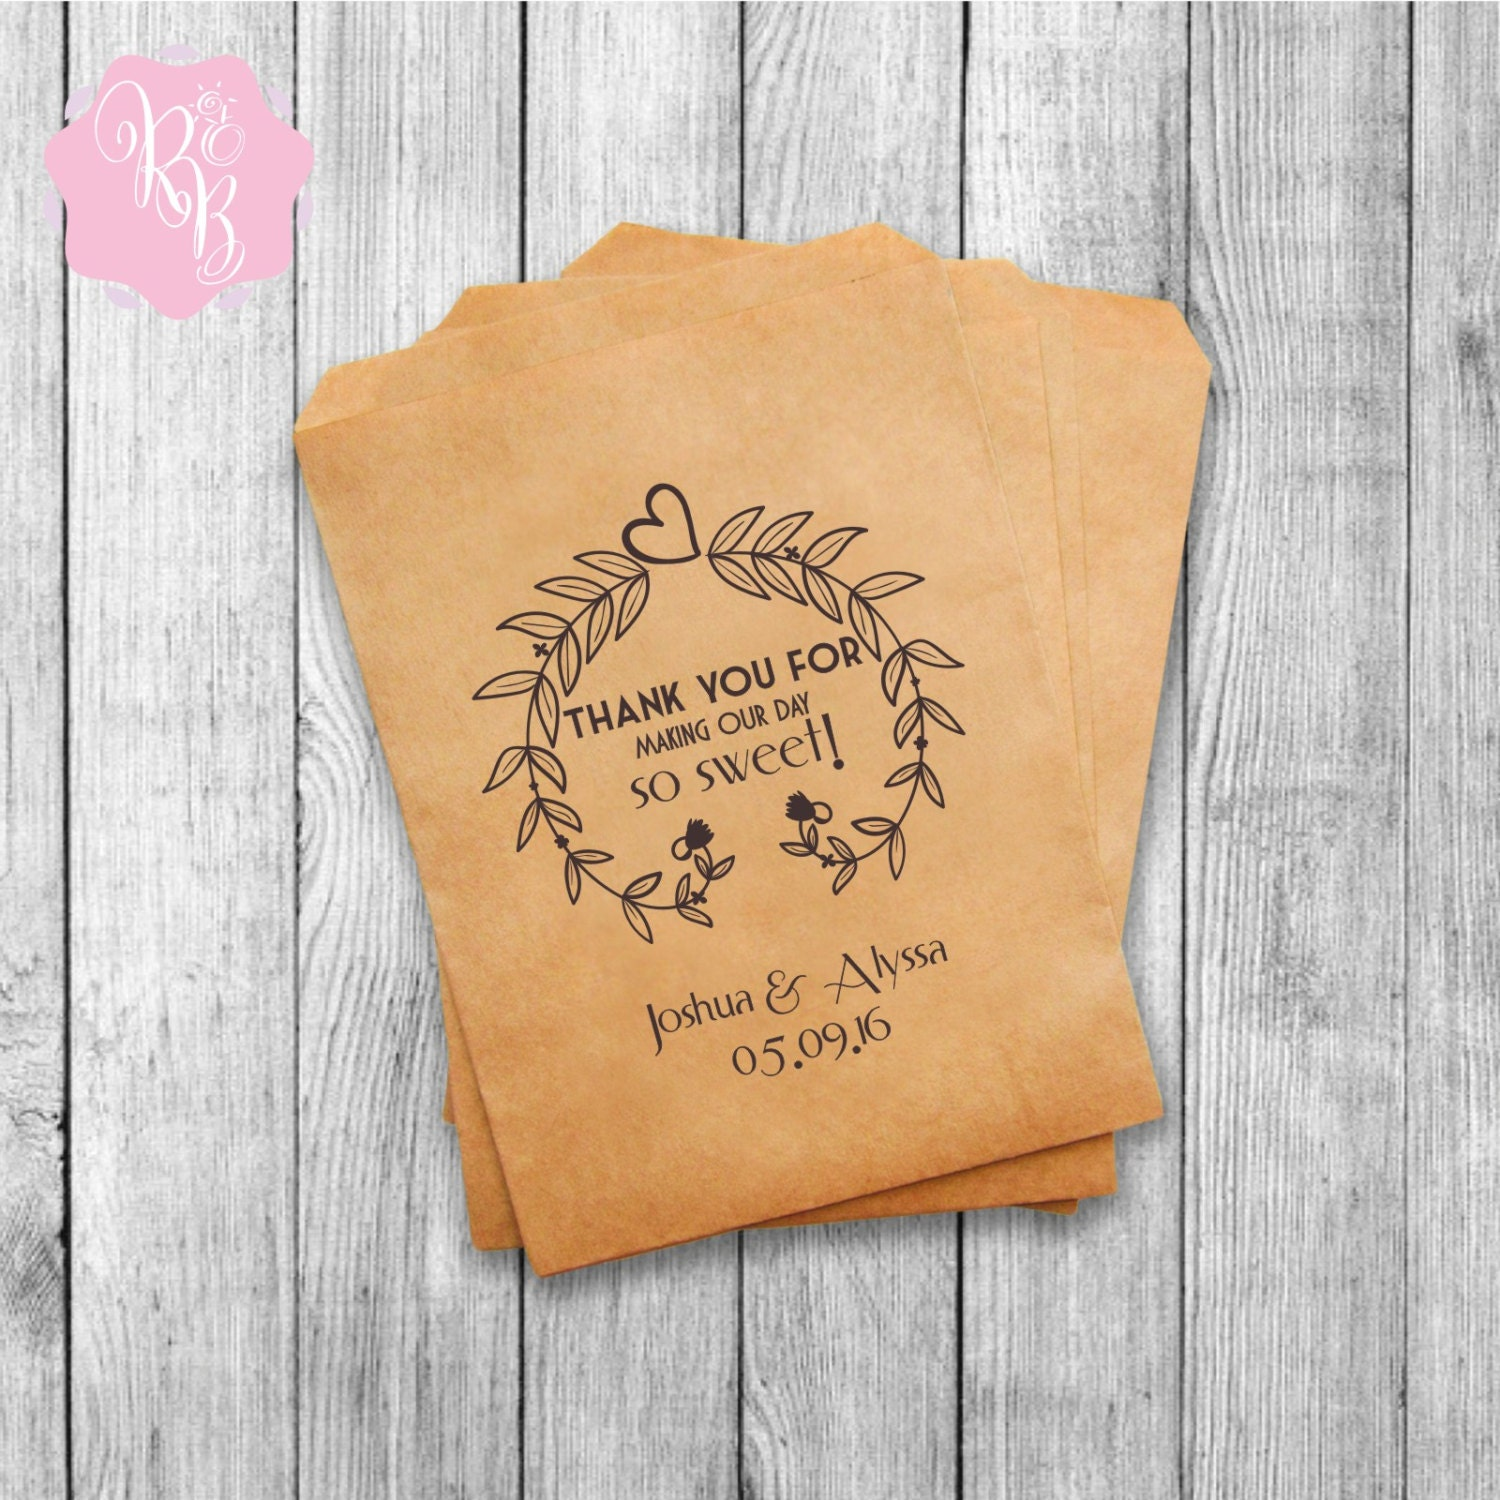 Wedding Favor Bags Personalized : Set of 20 Wedding Favor Bags Wedding Favors Personalized